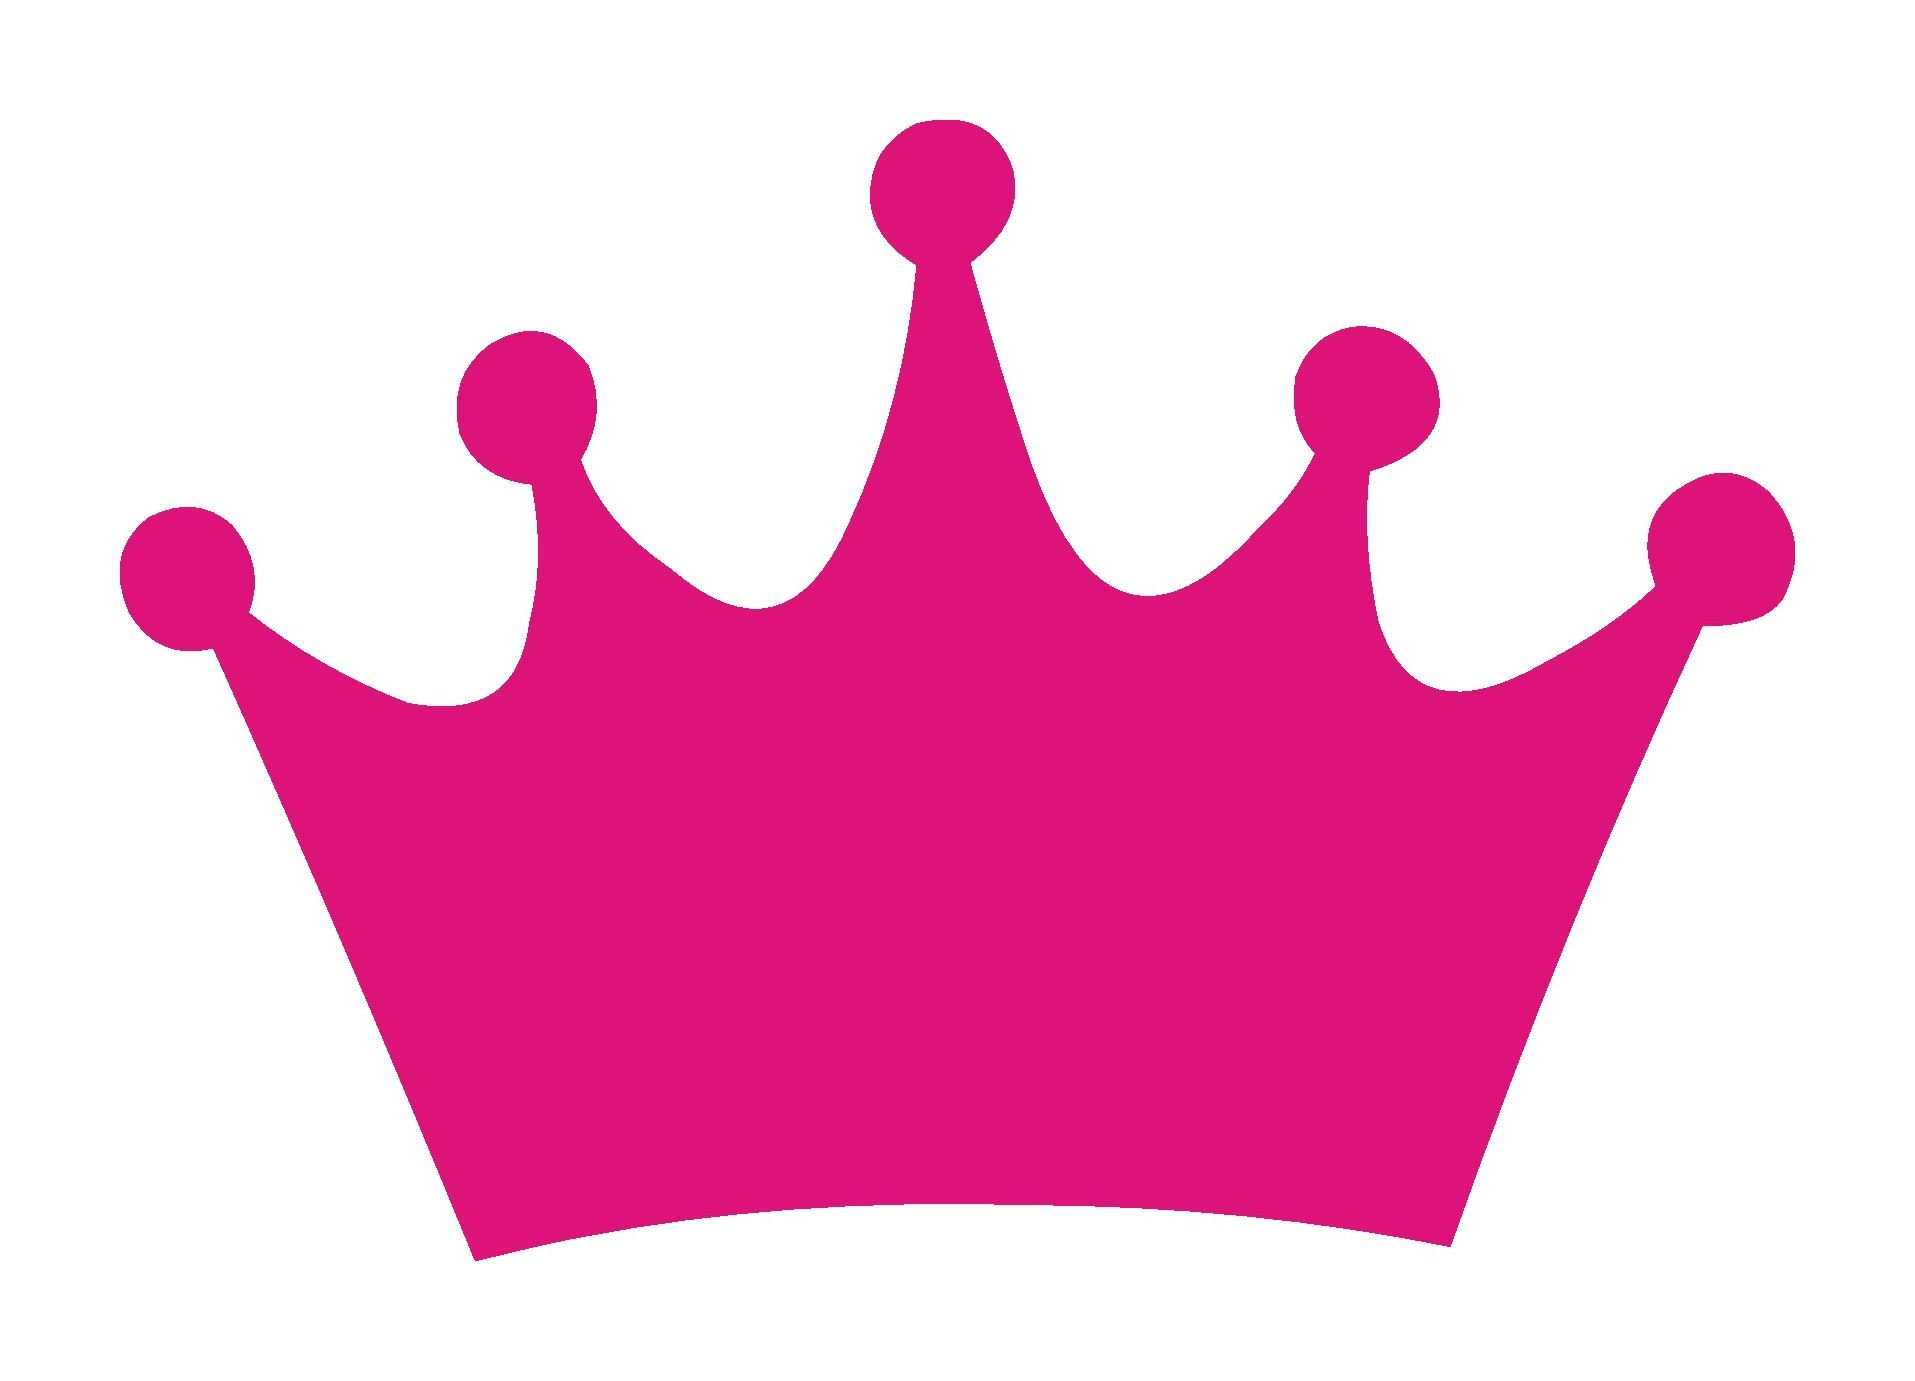 this is best princess crown clipart 15777 princess crown png rh pinterest com princess crown clipart black and white princess tiara black and white clipart